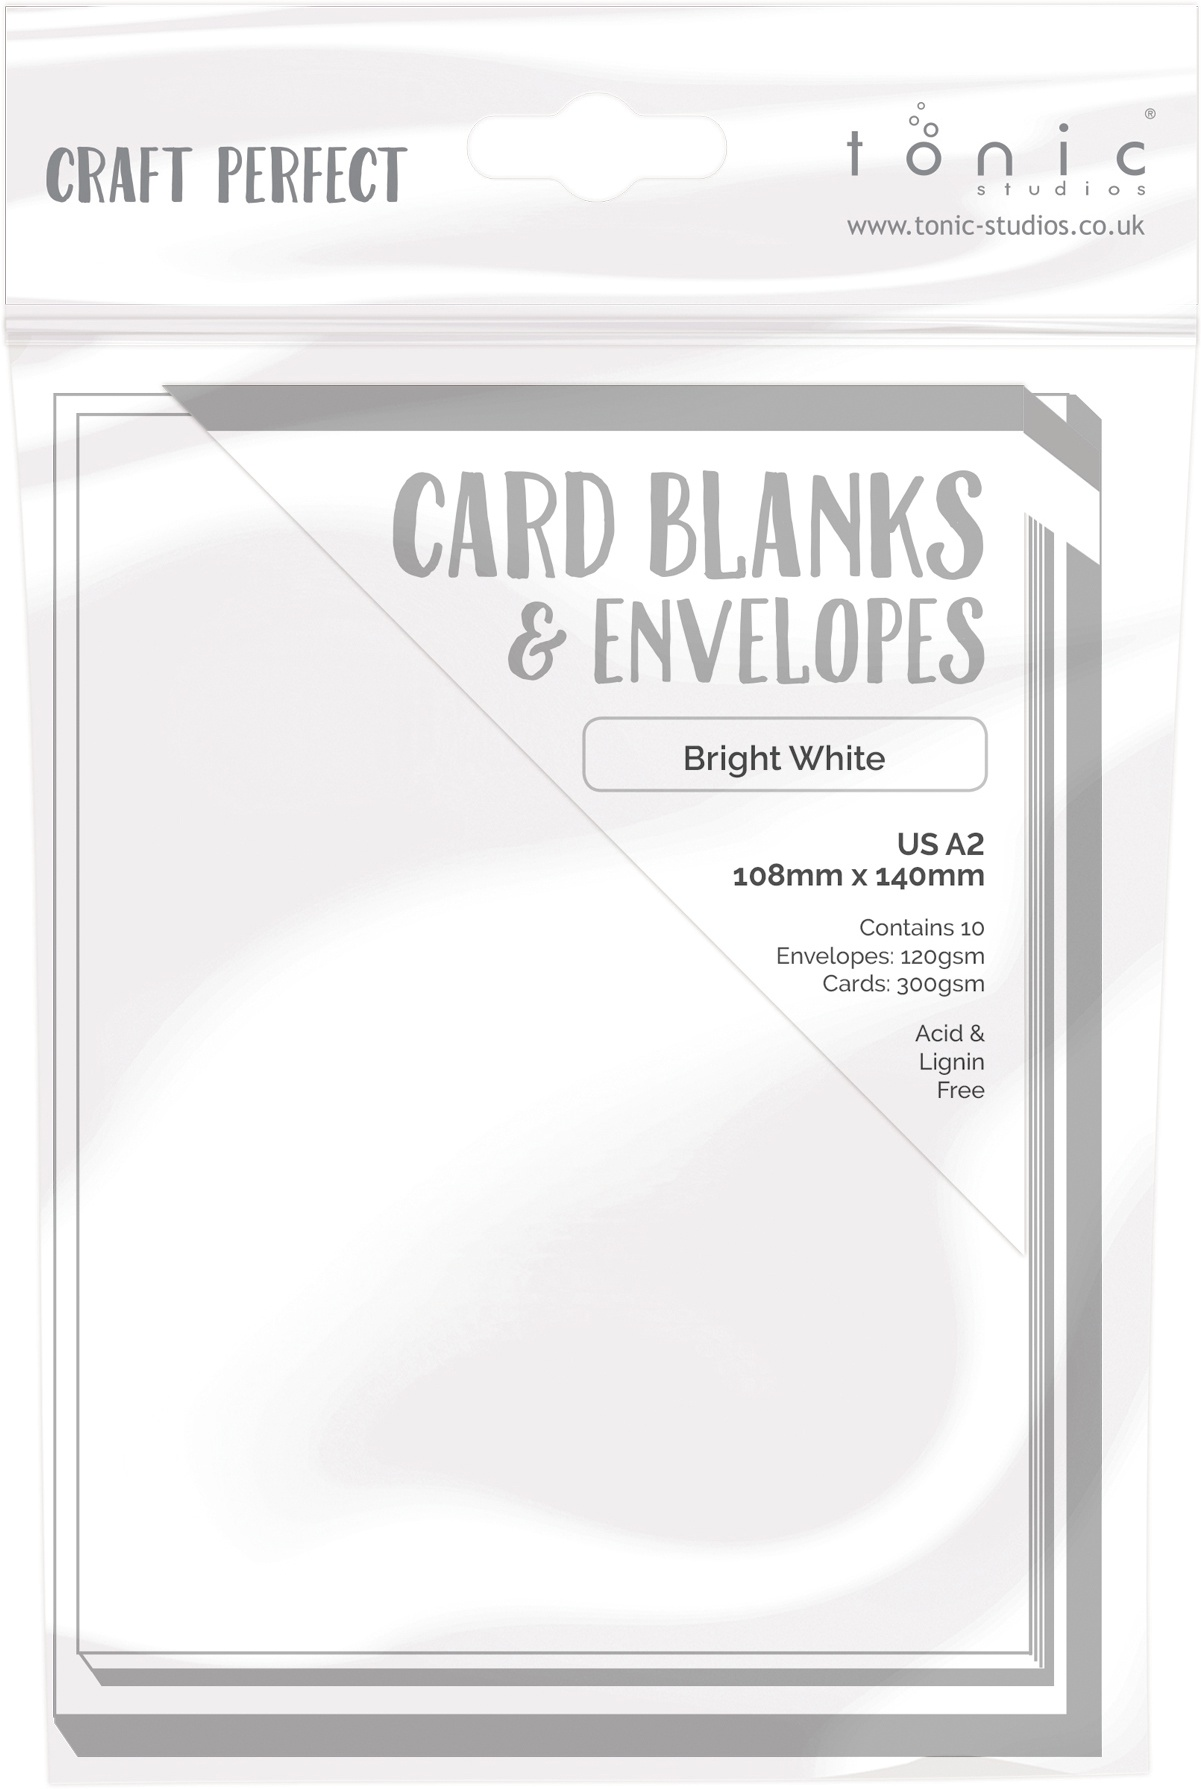 Craft Perfect Card Blanks US A2-Bright White